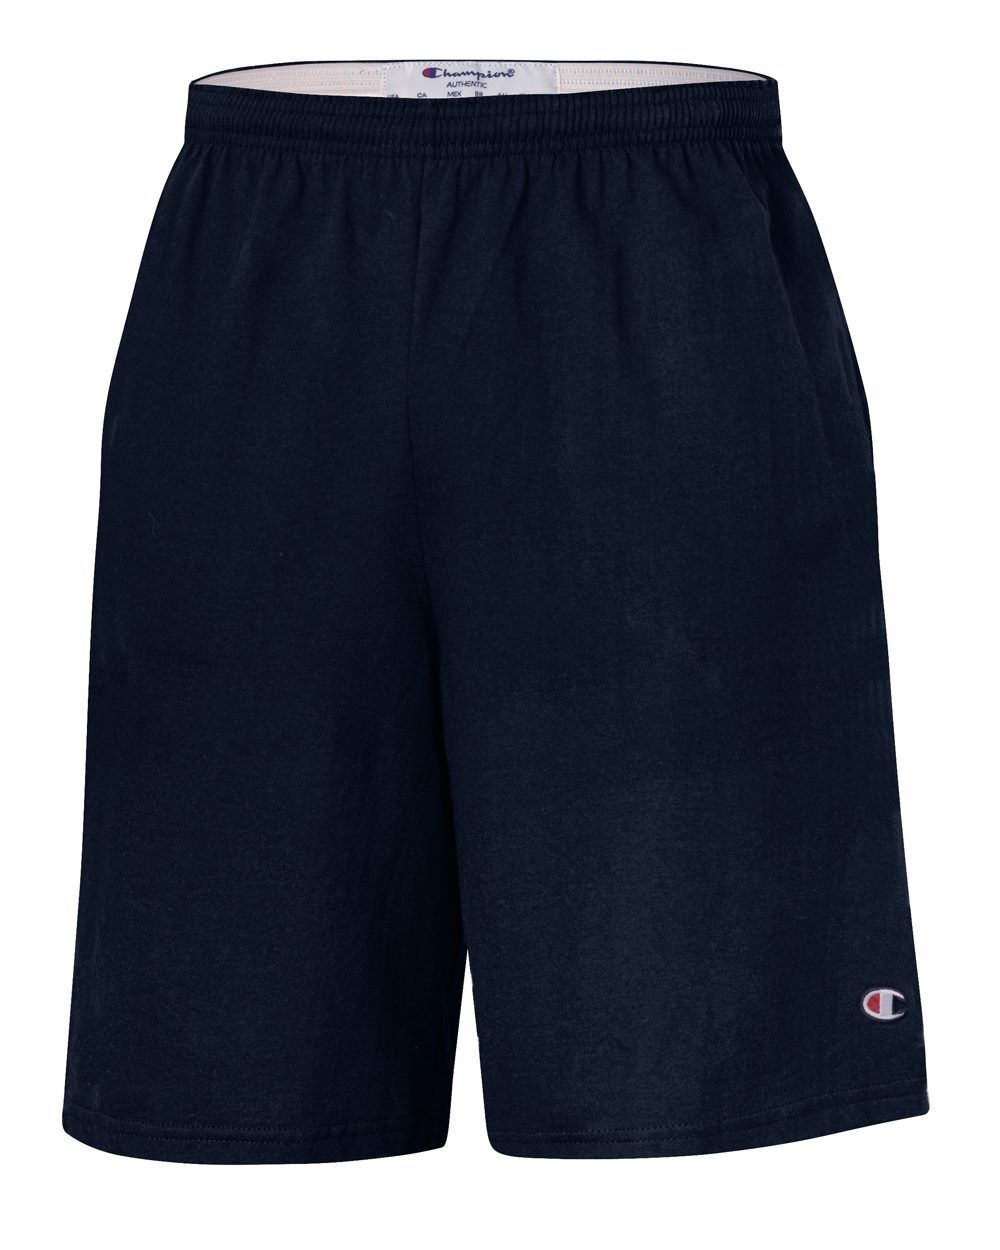 """Champion 9"""" Inseam Cotton Jersey Shorts with Pockets - 8180"""